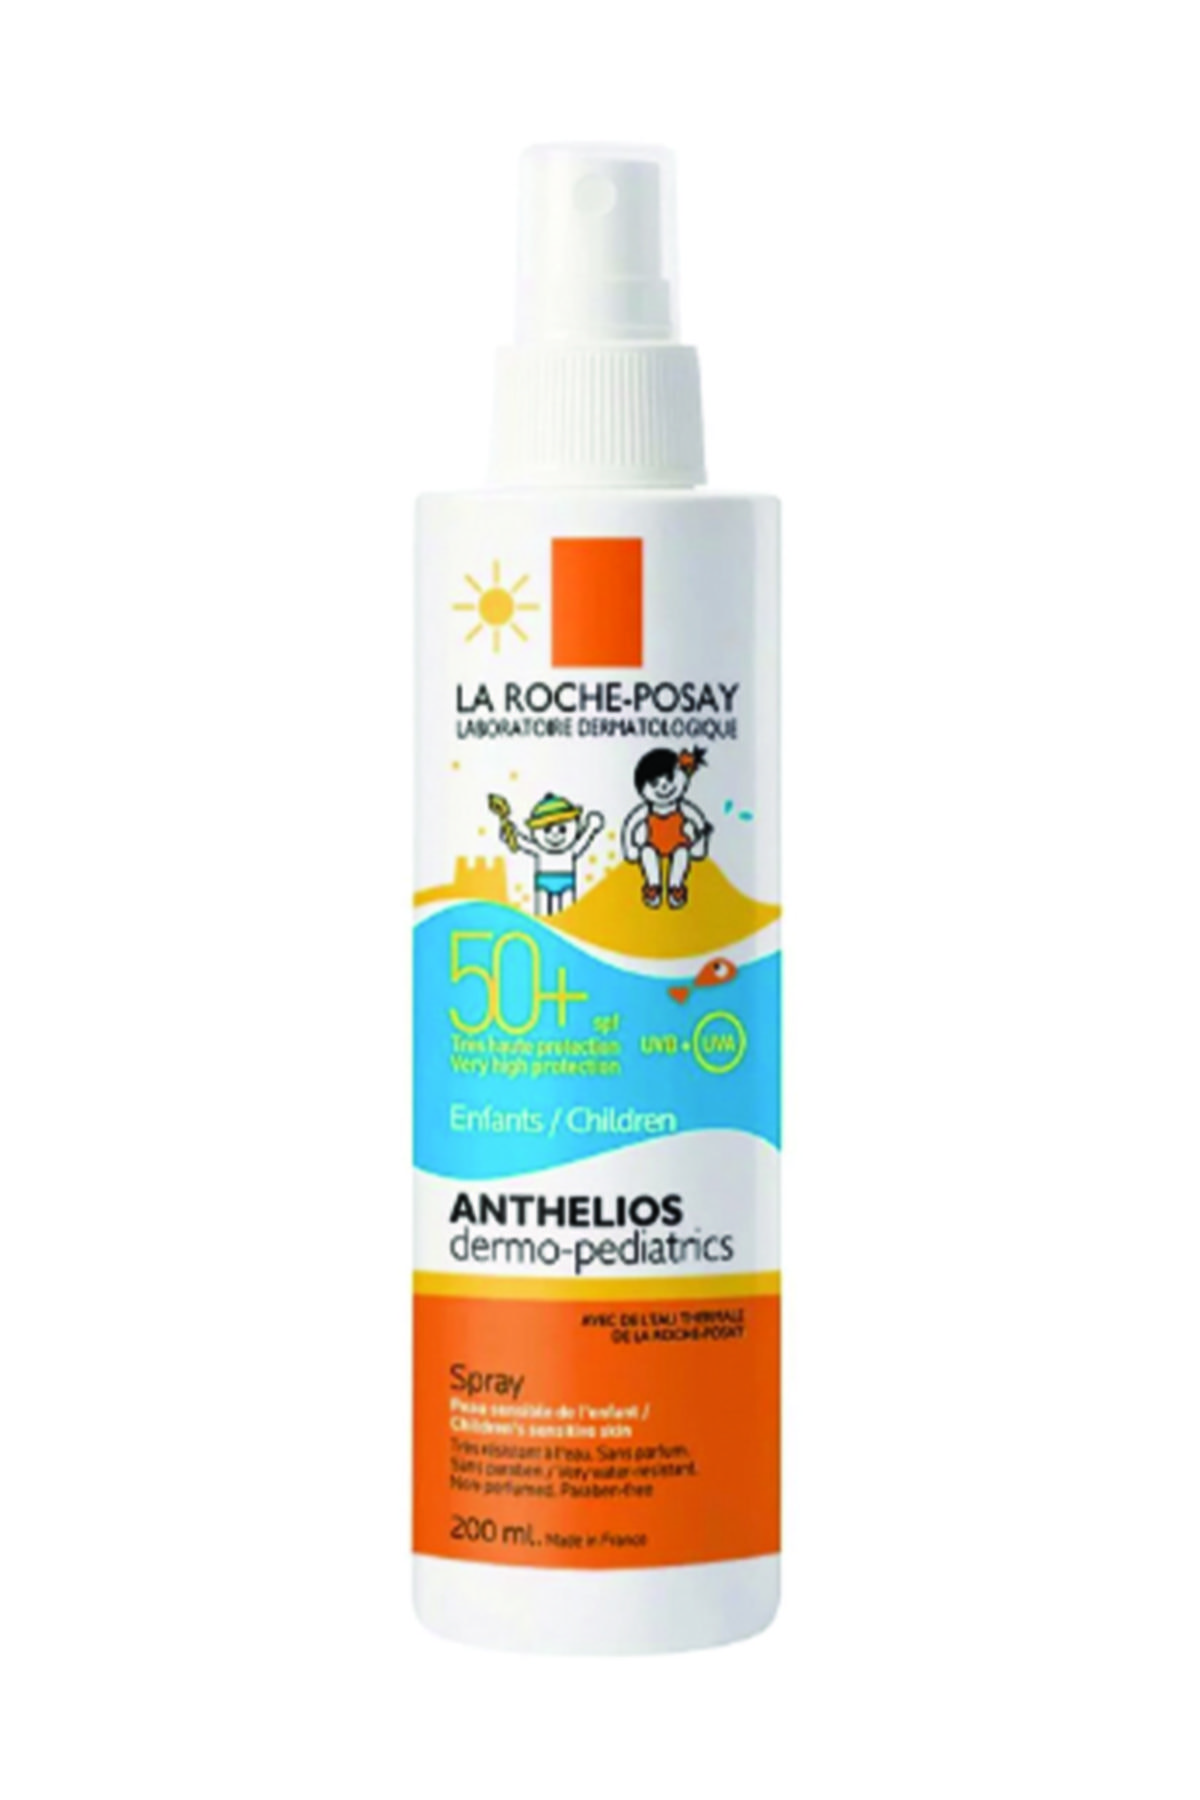 La Roche Posay Anthelios Dermo-pediatrics SPF 50+ 200ml